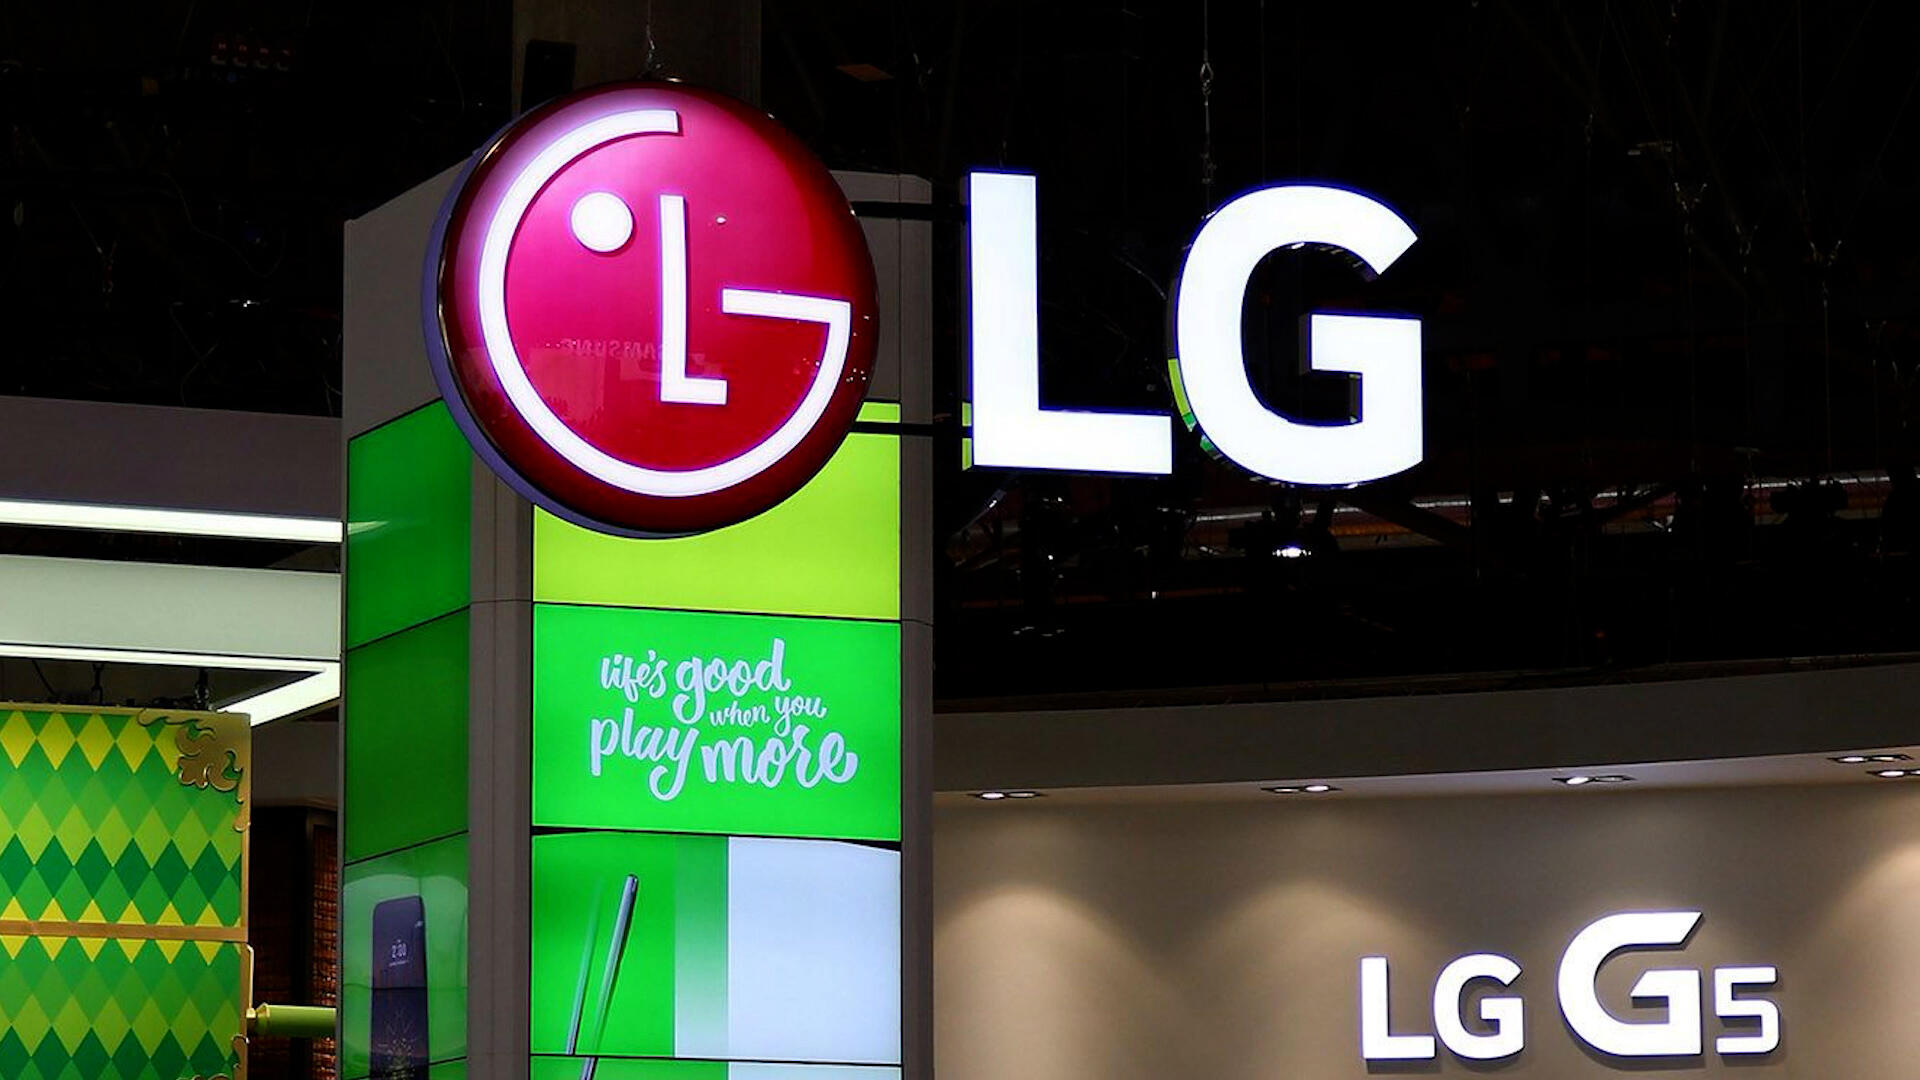 Video: LG stops making phones, GM tests electric Cadillac